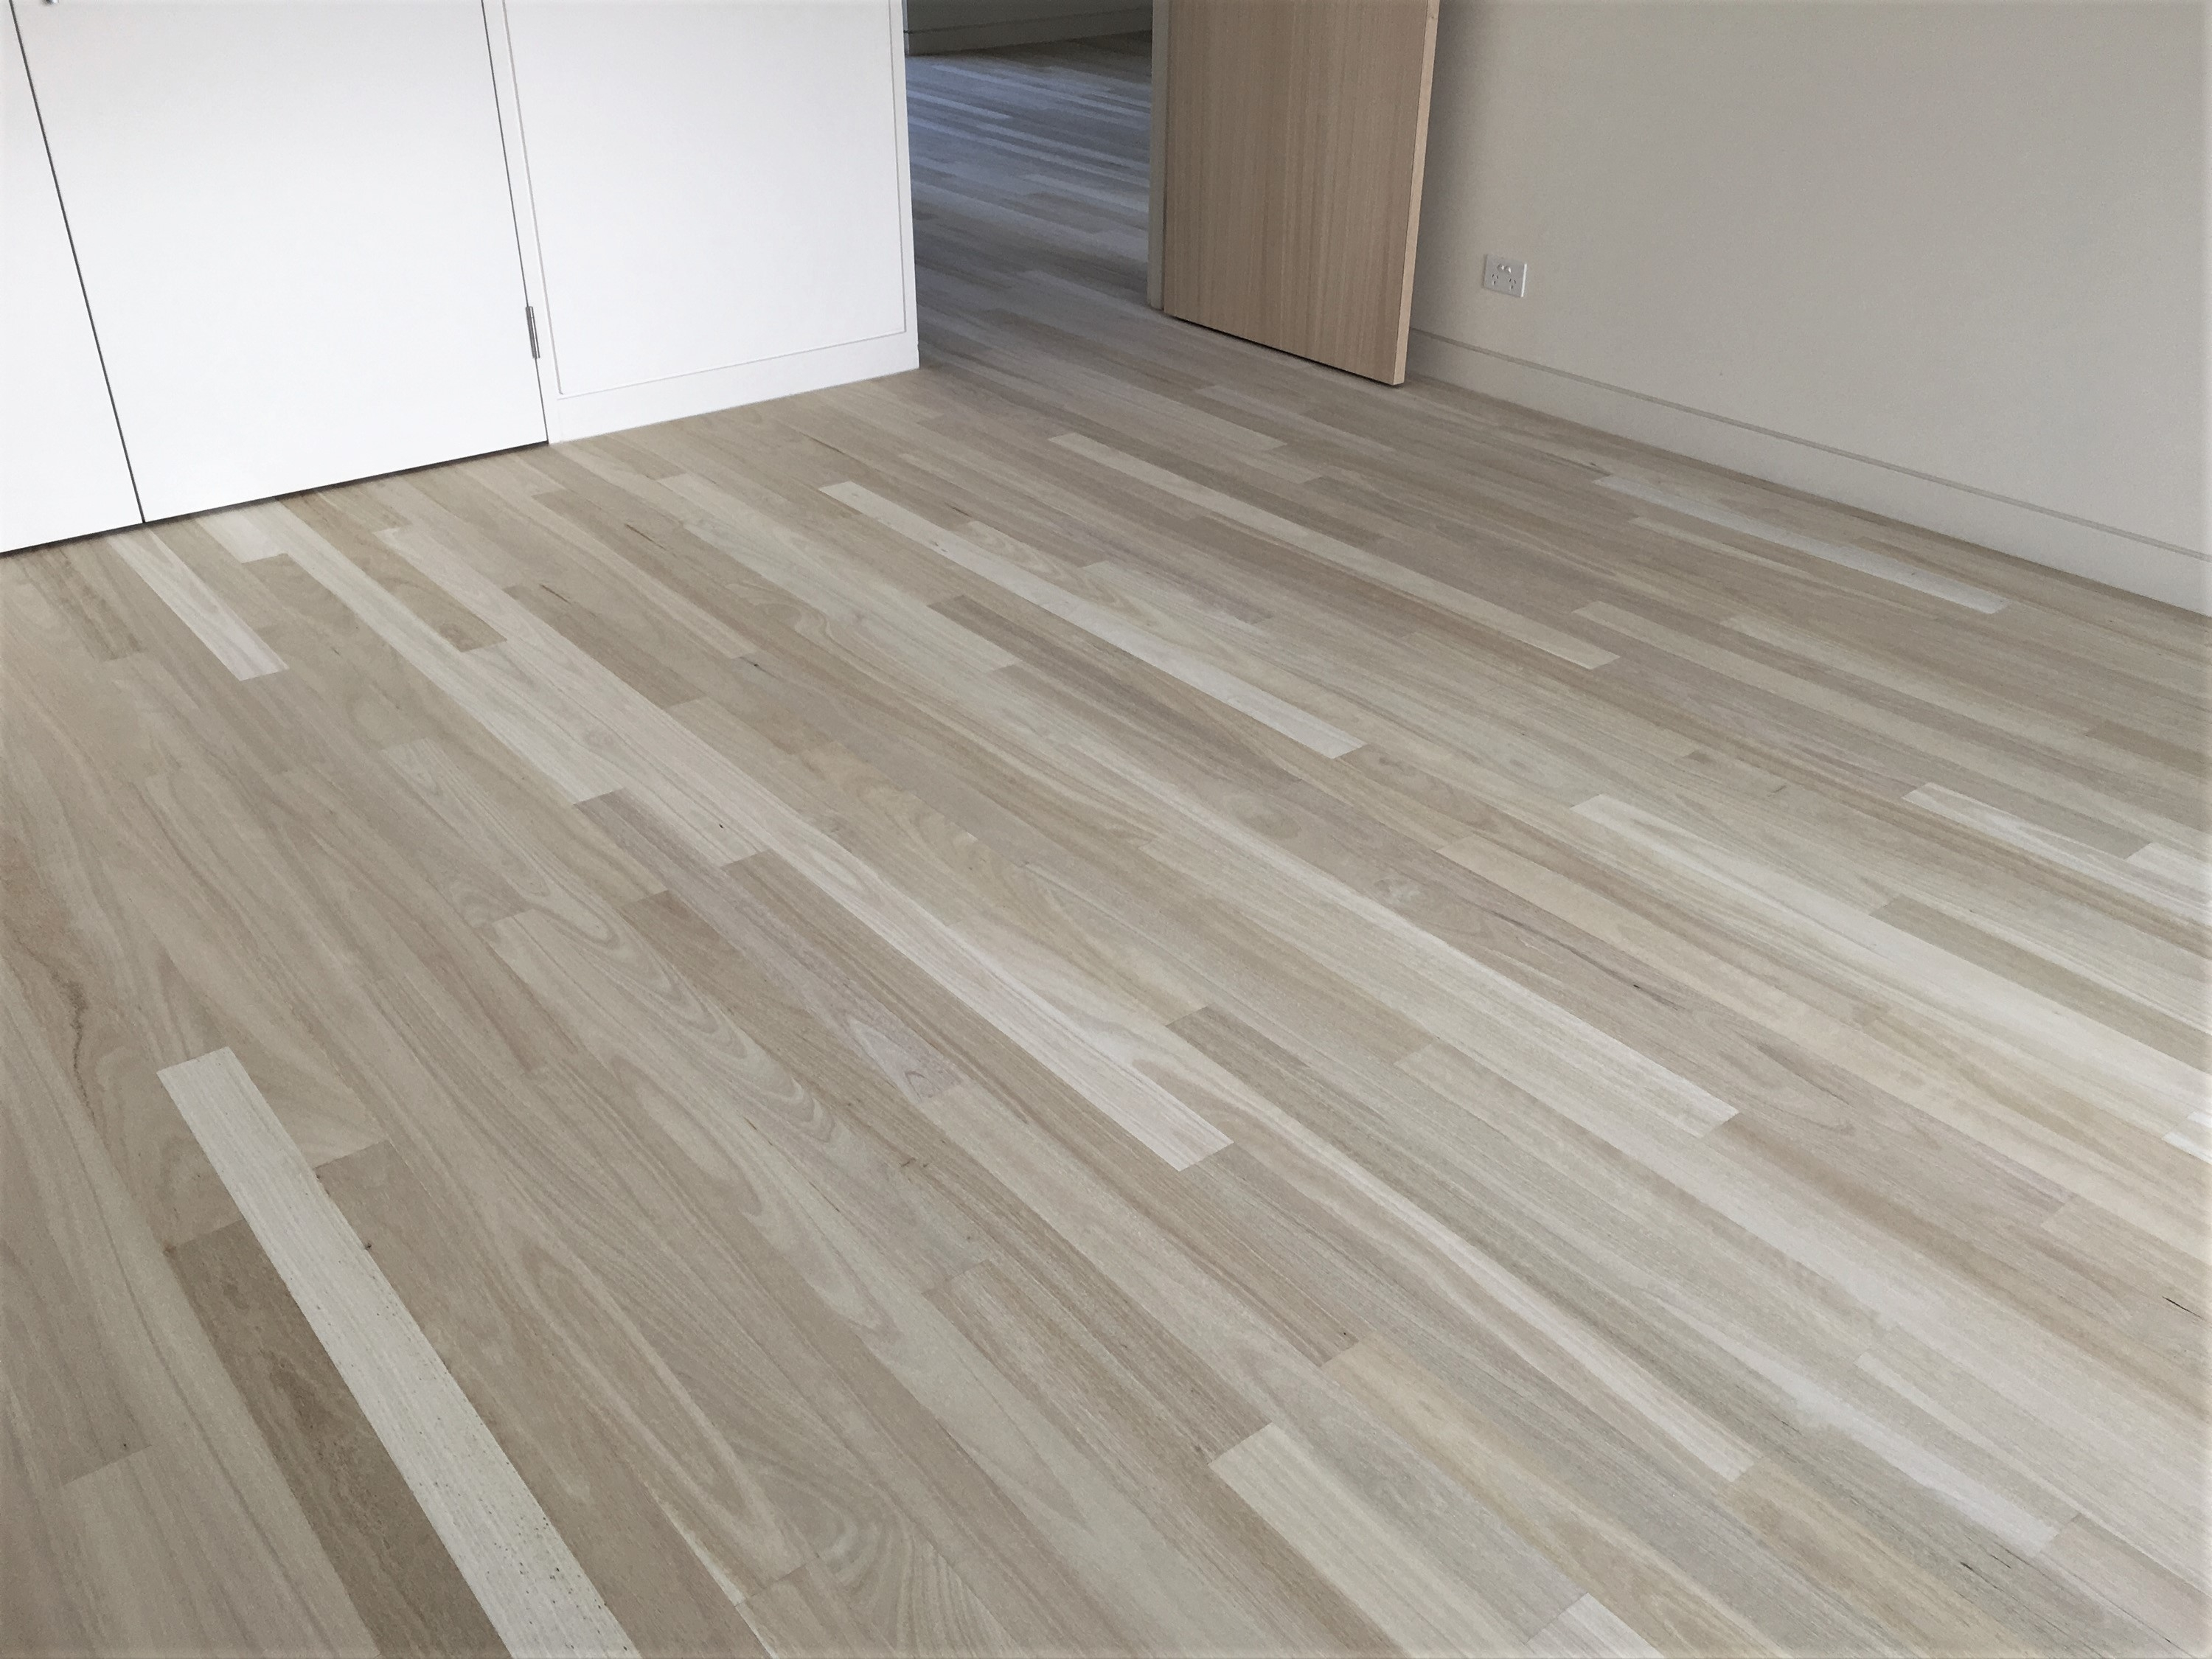 Permalink to Bleached Wooden Flooring